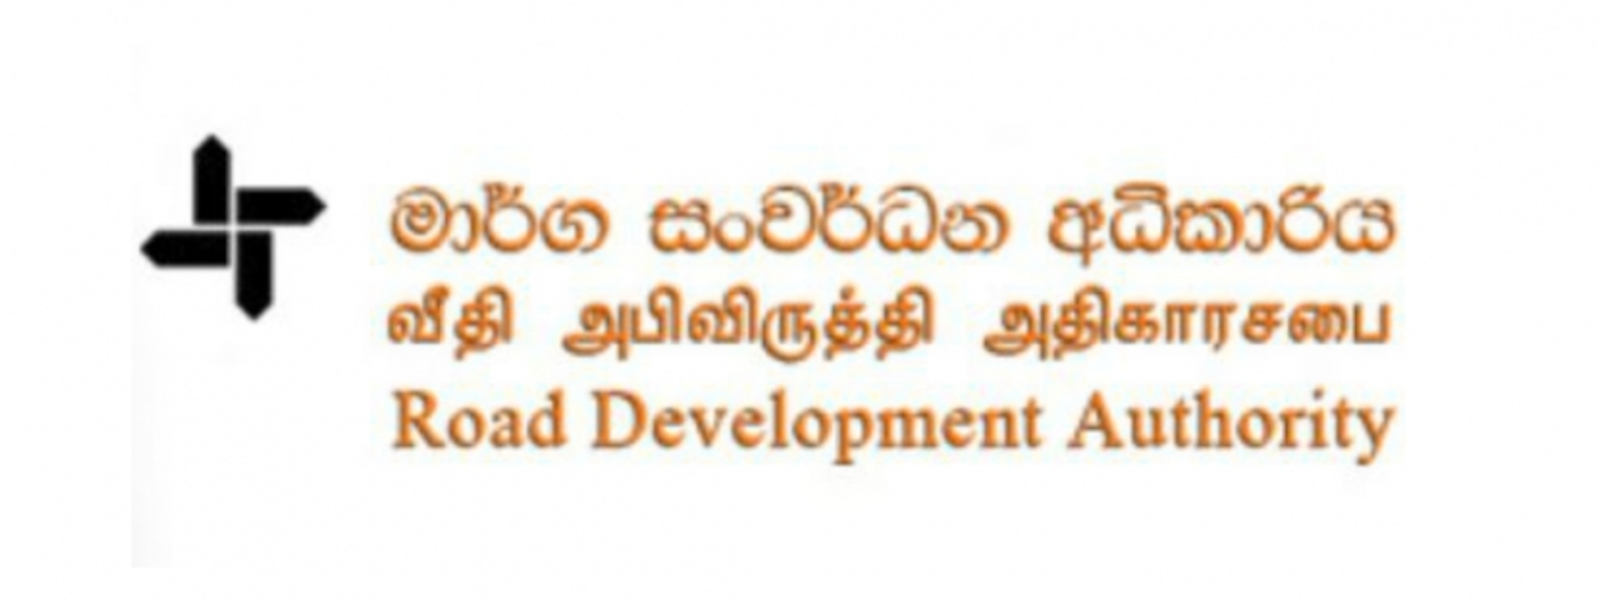 RDA to take over all incomplete road development projects